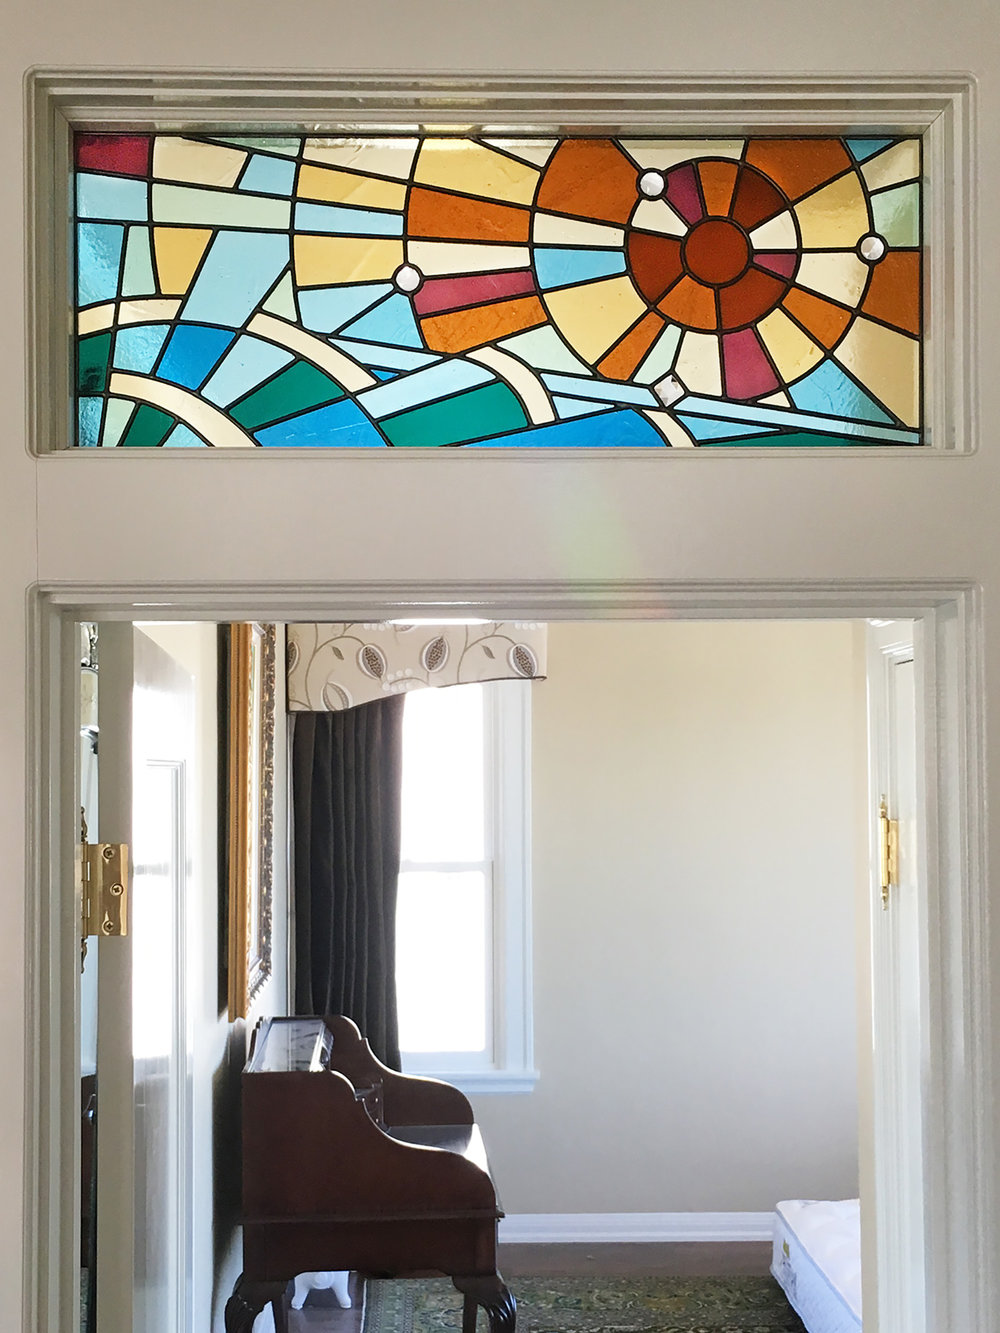 abstract stained glass ocean sunset palo alto atherton menlo park san jose san francisco bay area legacy glass.jpg